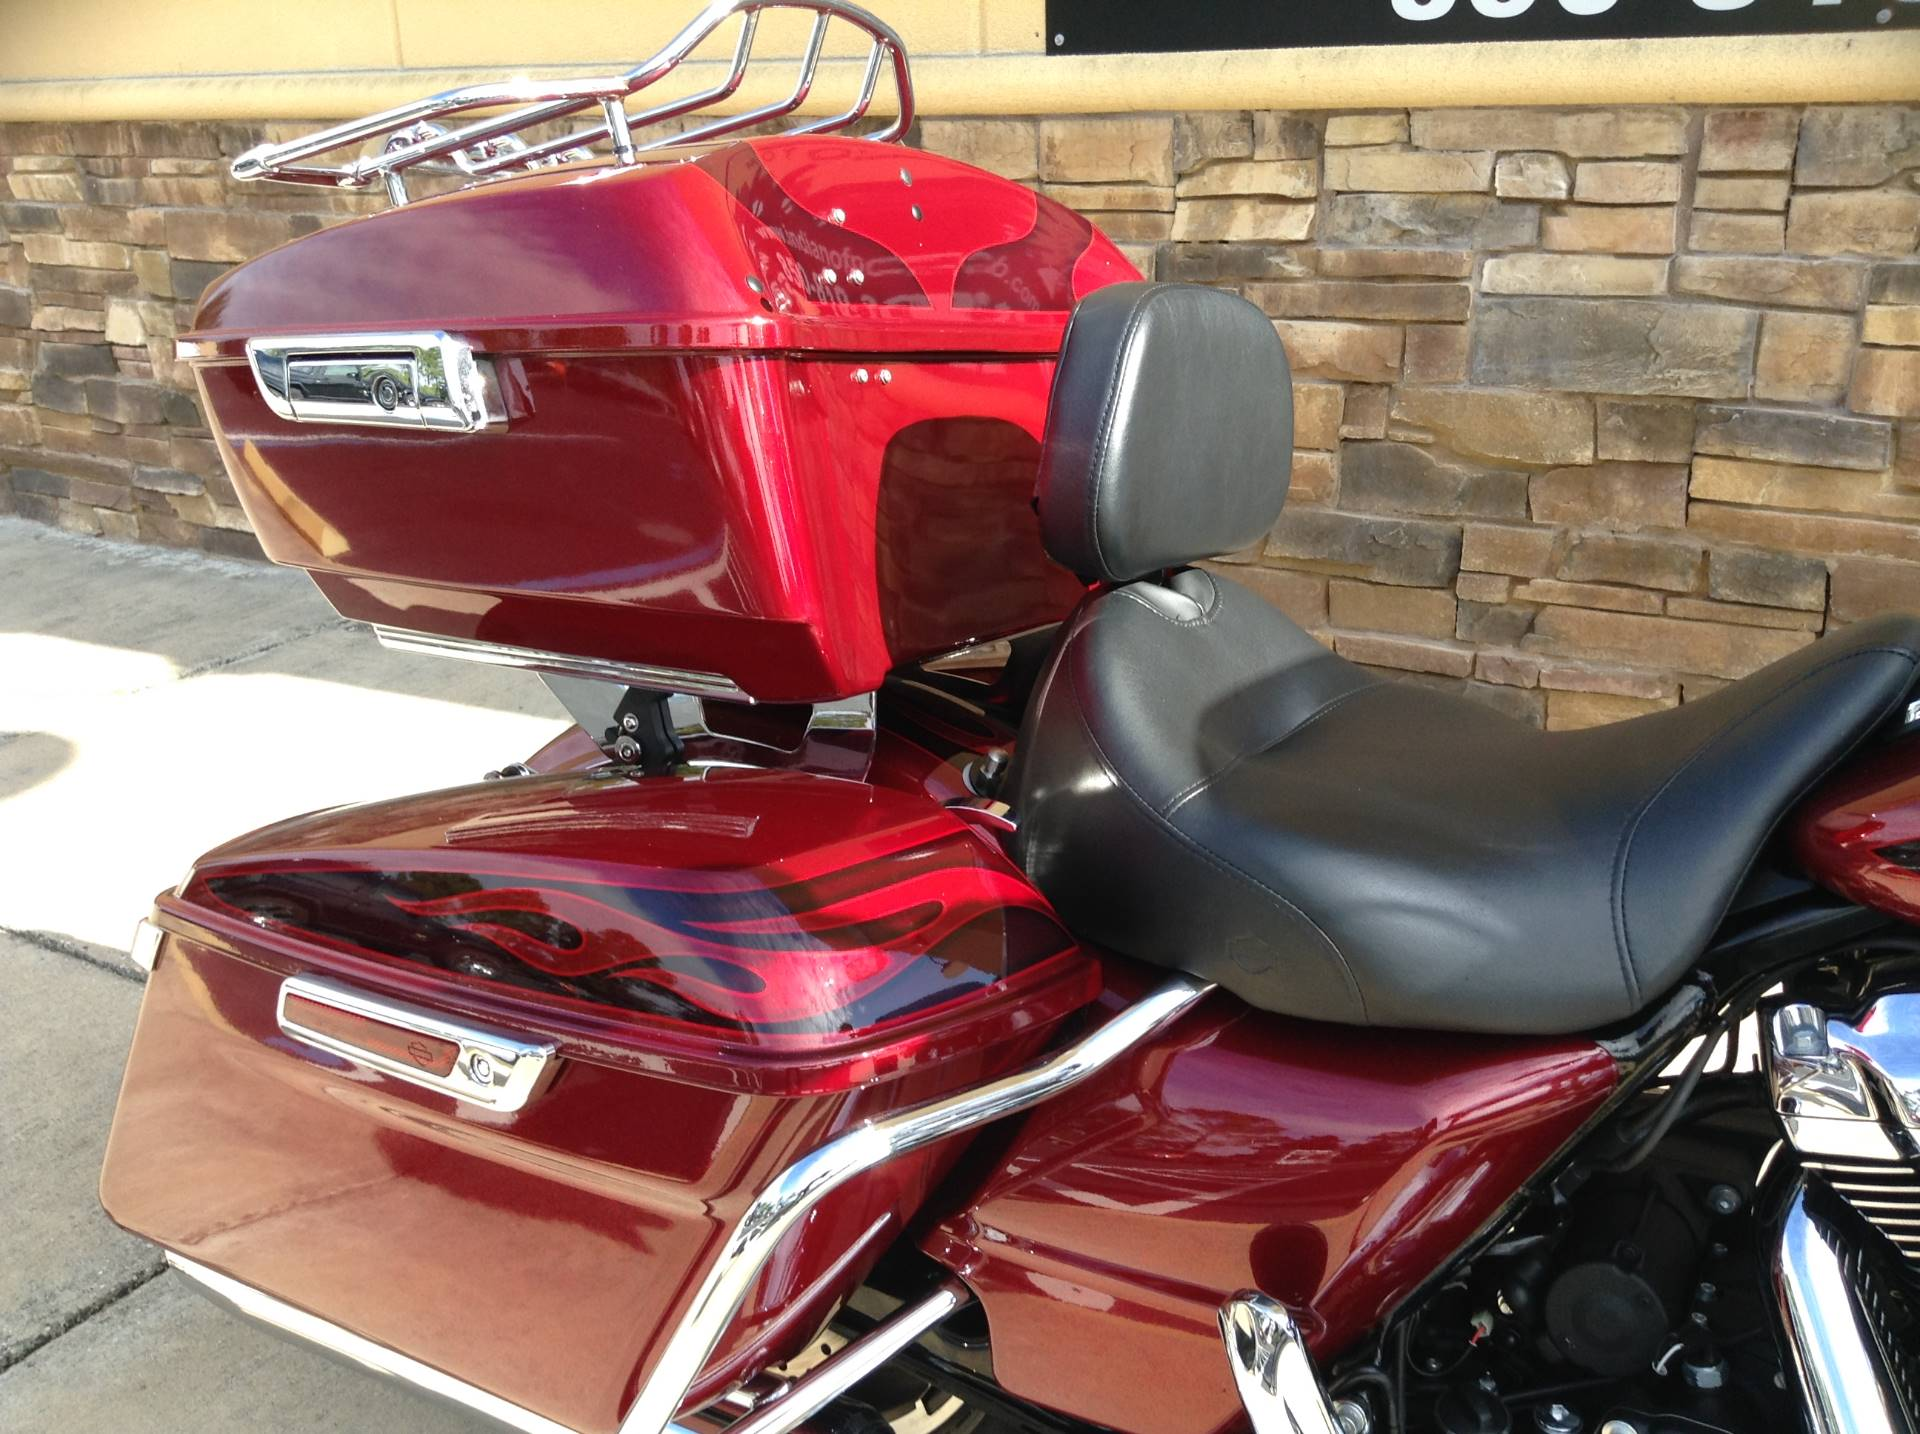 2017 Harley-Davidson ROAD GLIDE in Panama City Beach, Florida